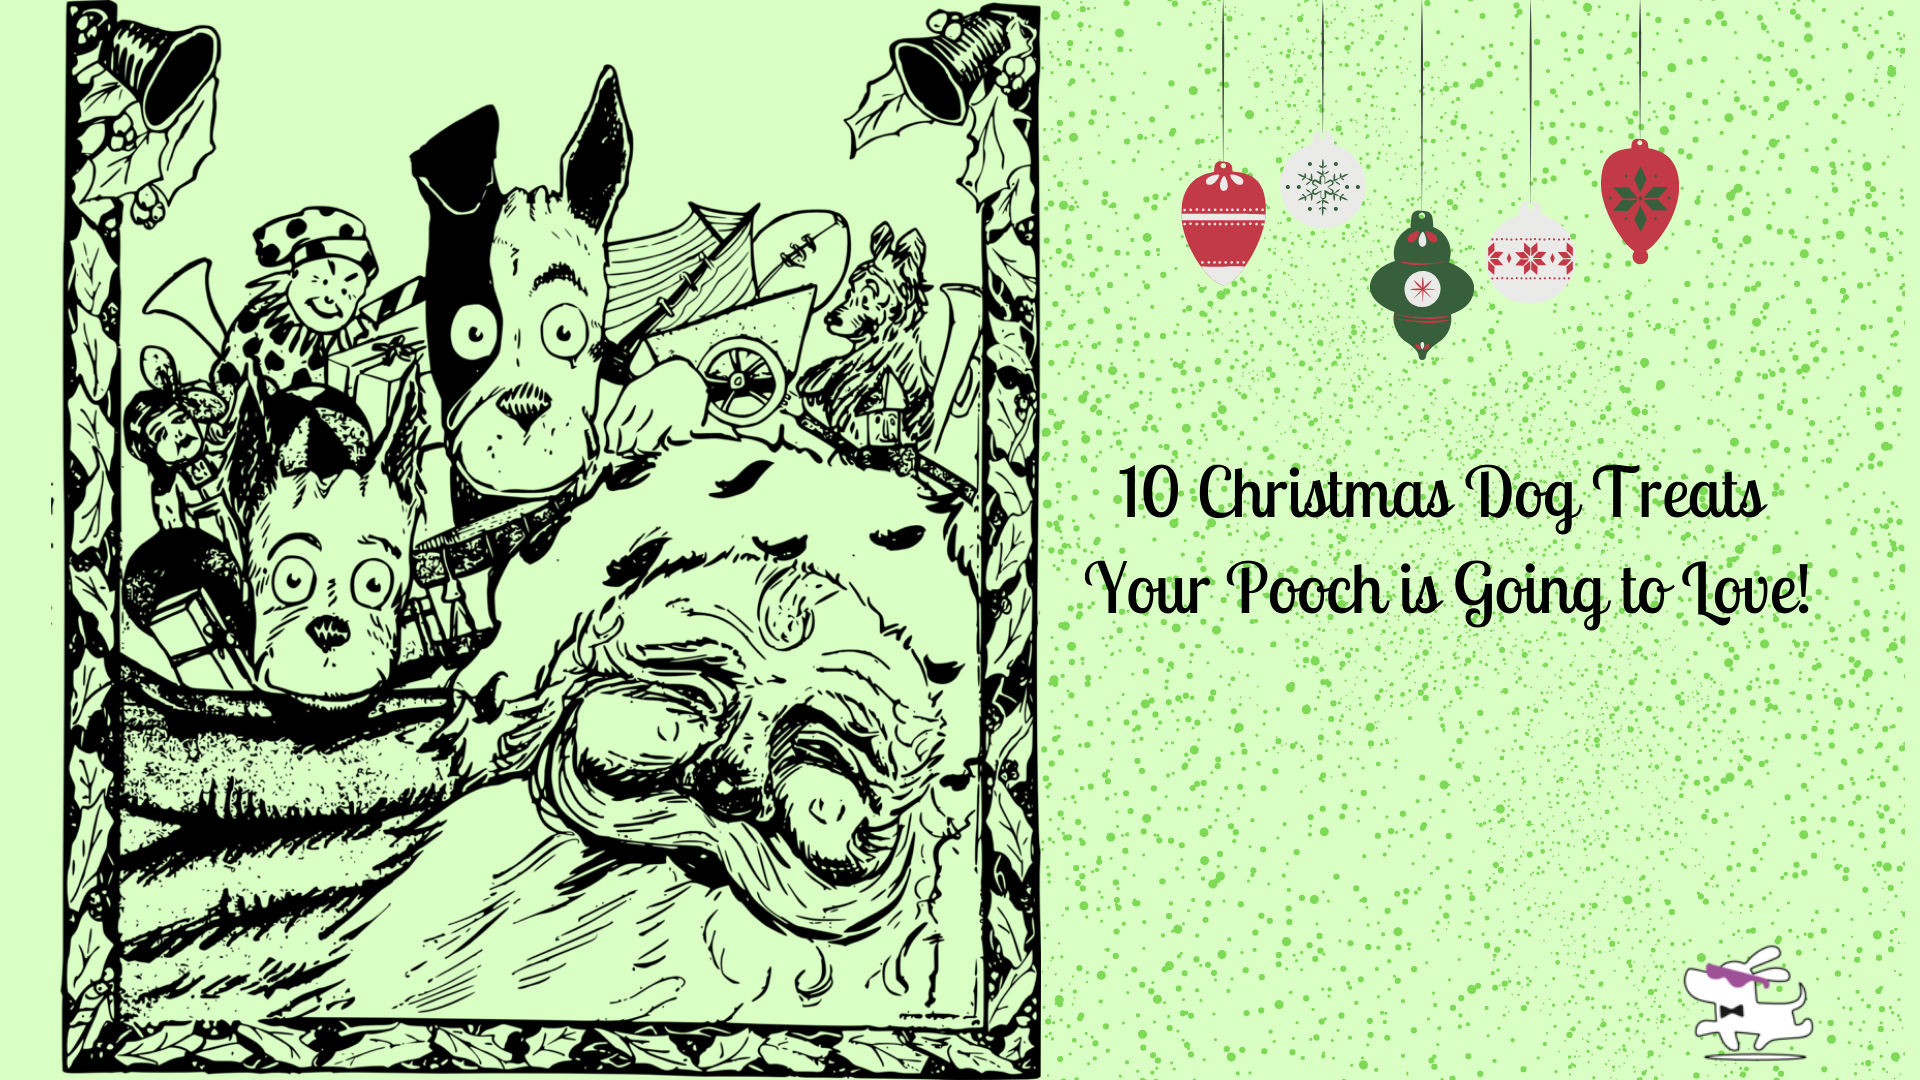 10 Christmas Dog Treats Your Pooch is Going to Love! |